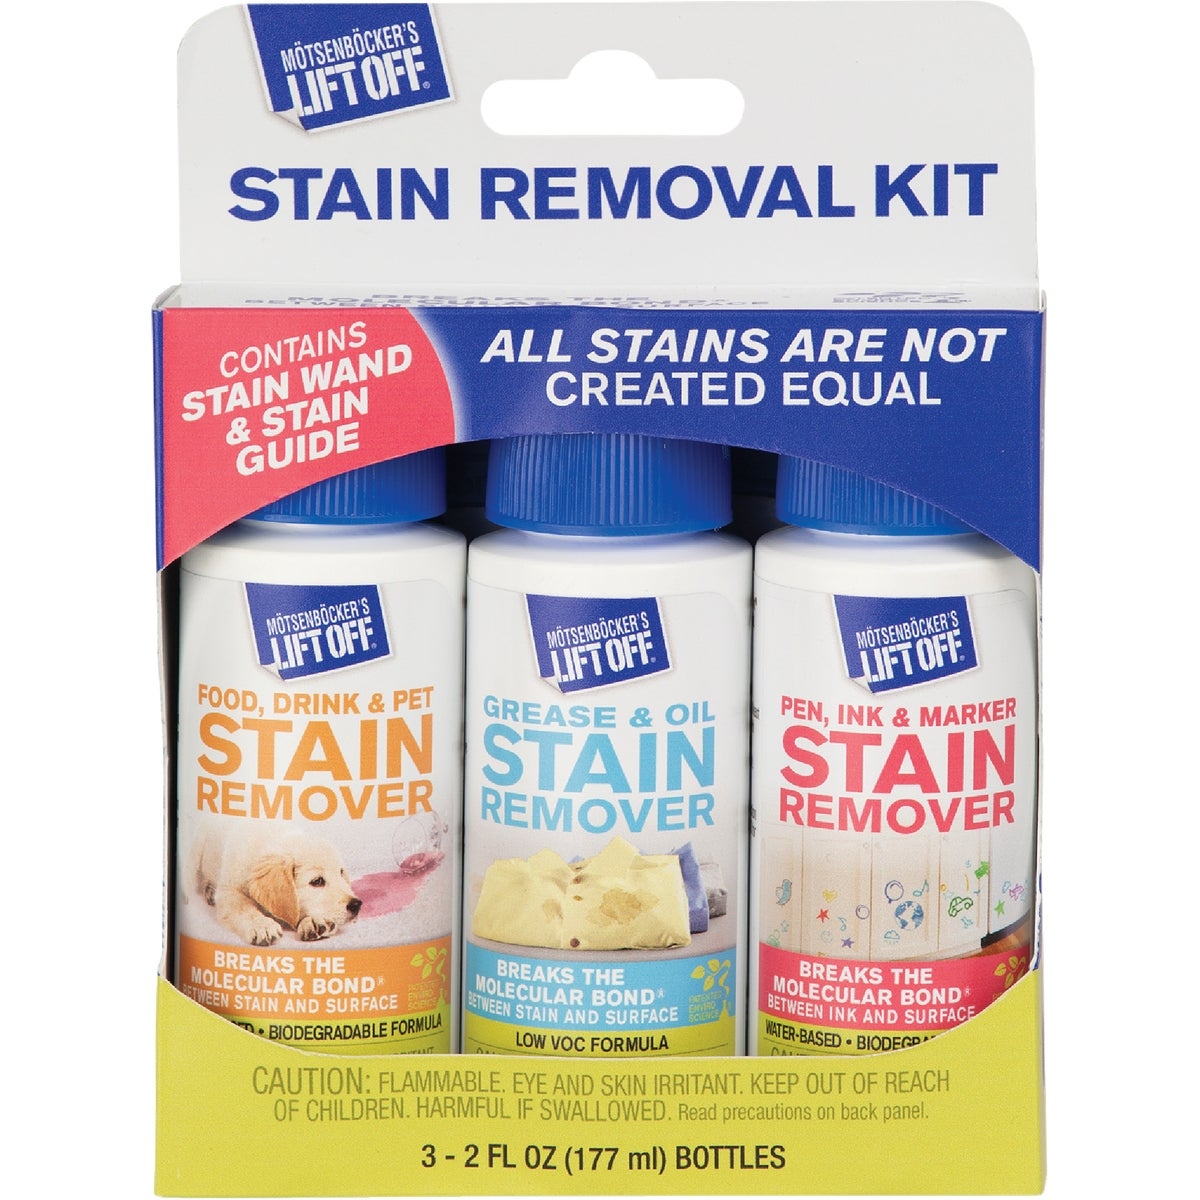 2OZ STAIN REMOVER KIT - 421-01 by Motsenbocker